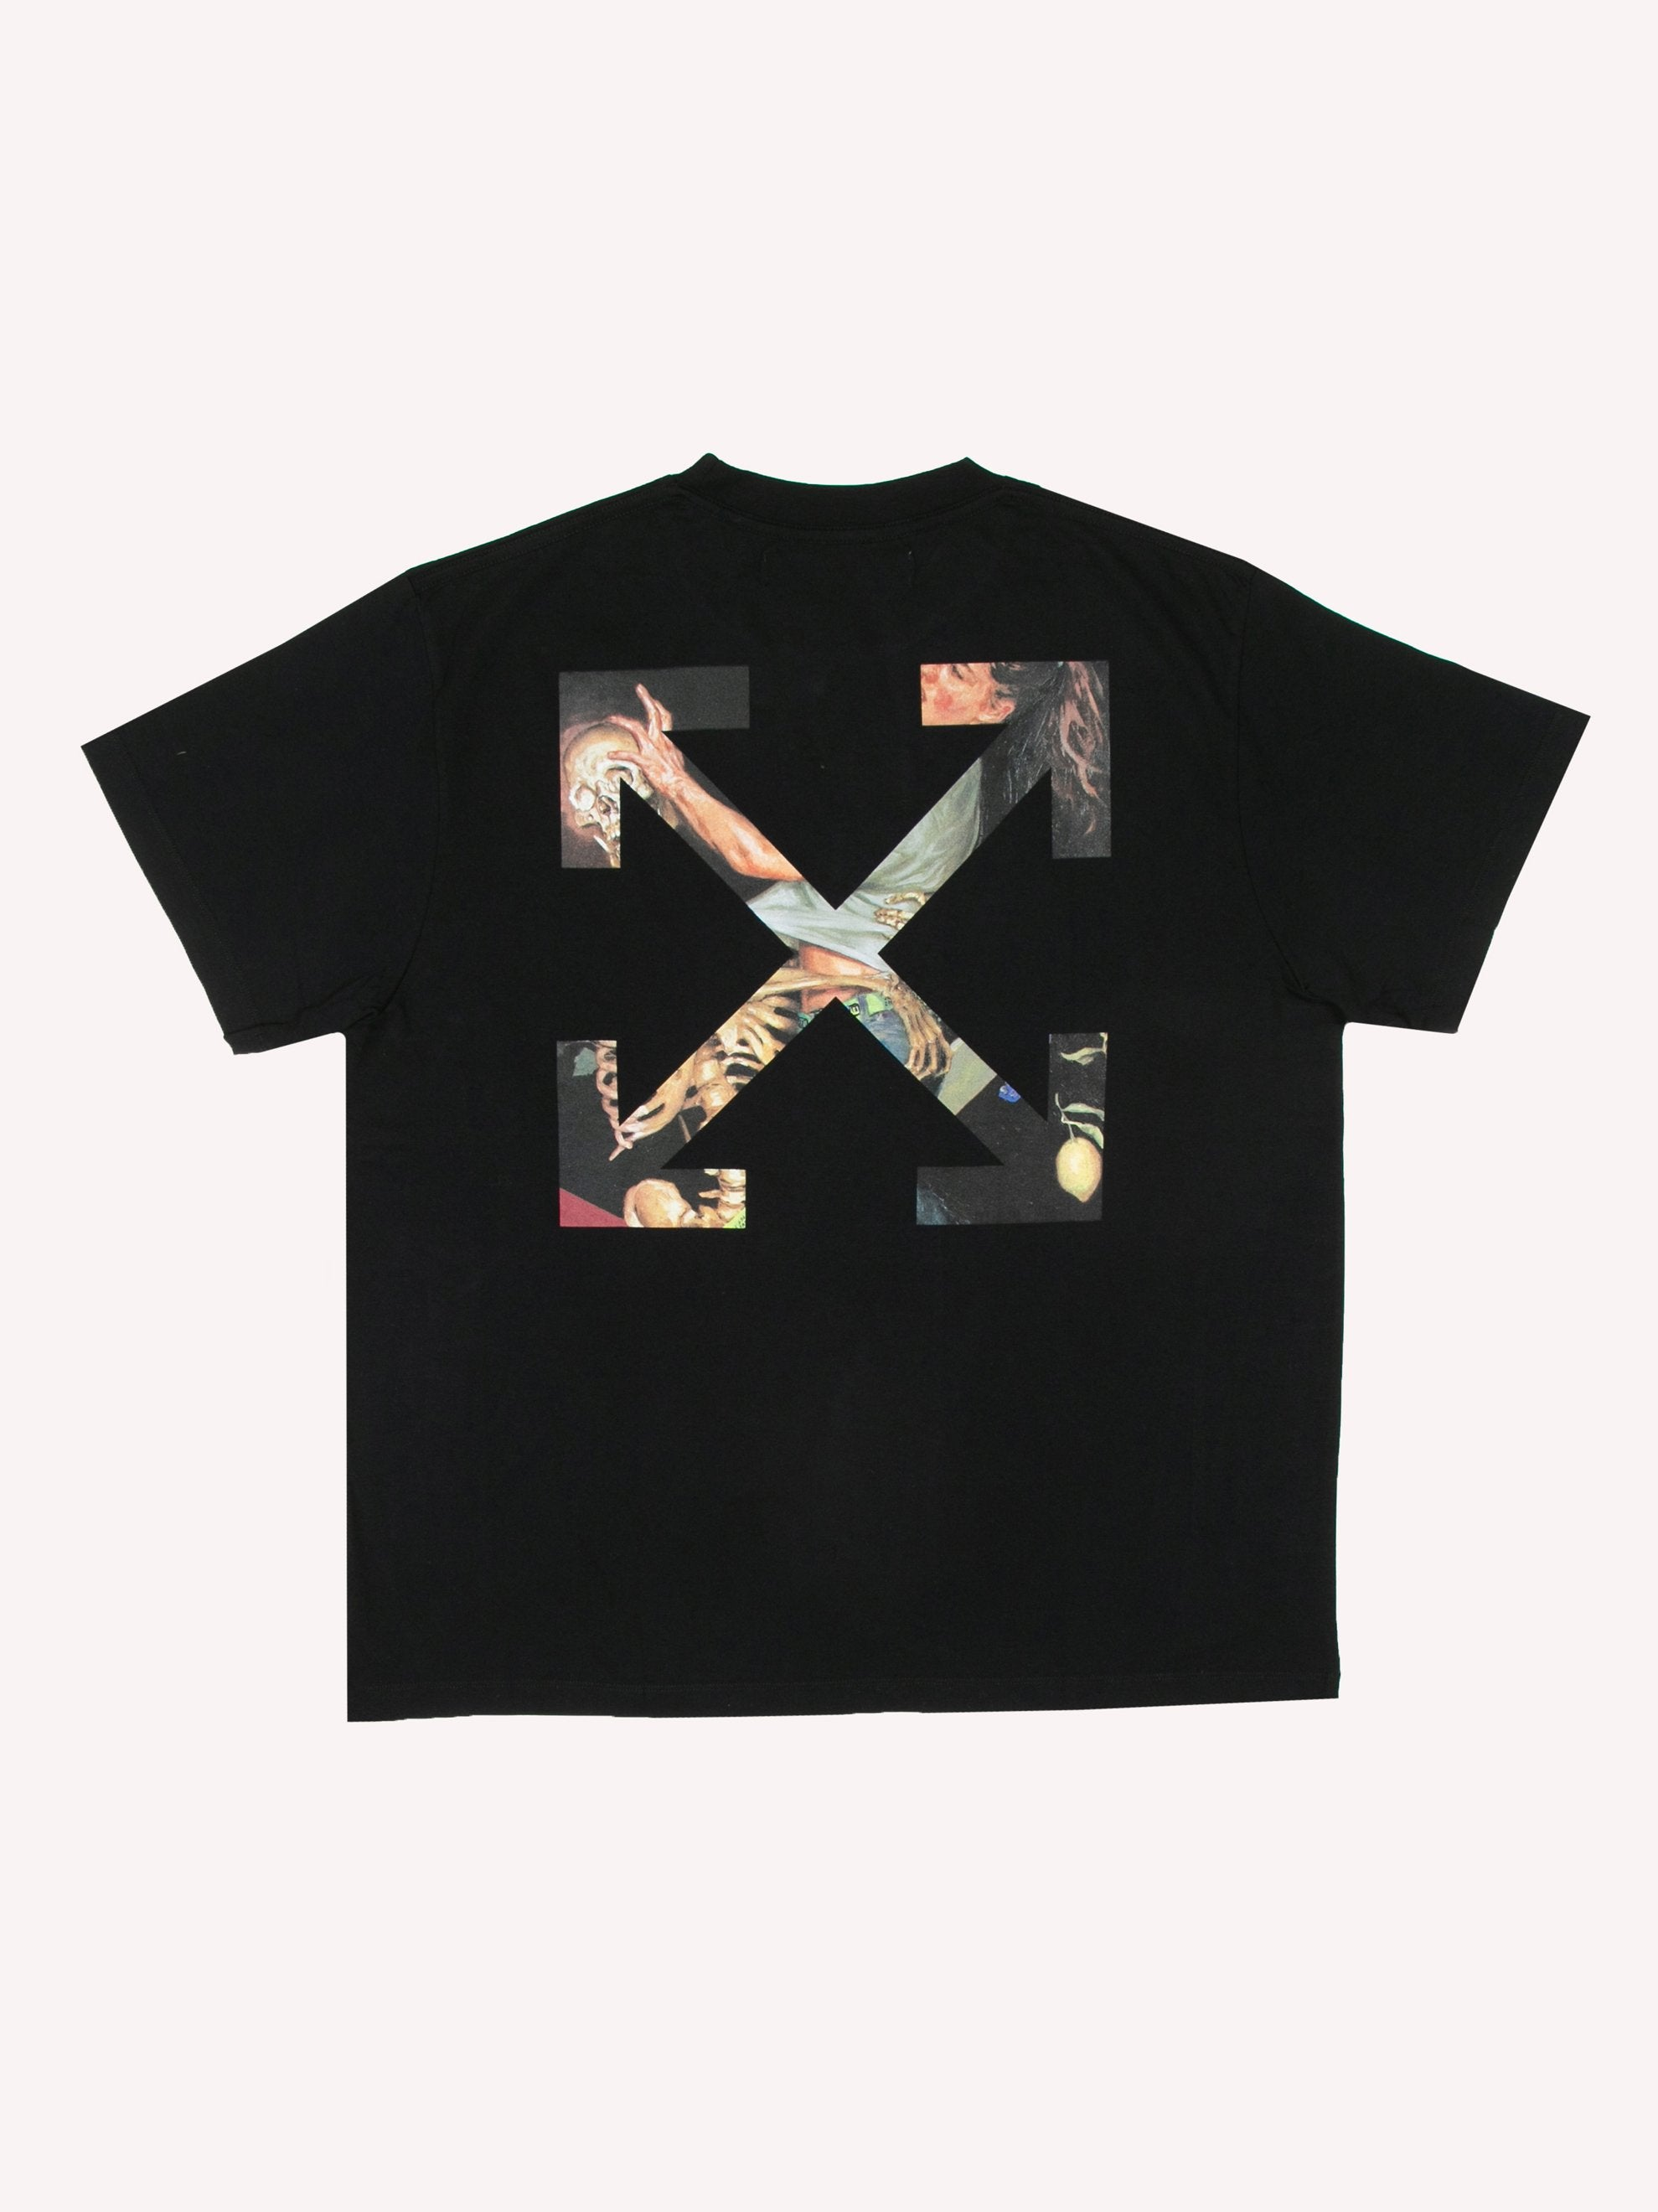 Pascal Arrow S/S Over T-Shirt